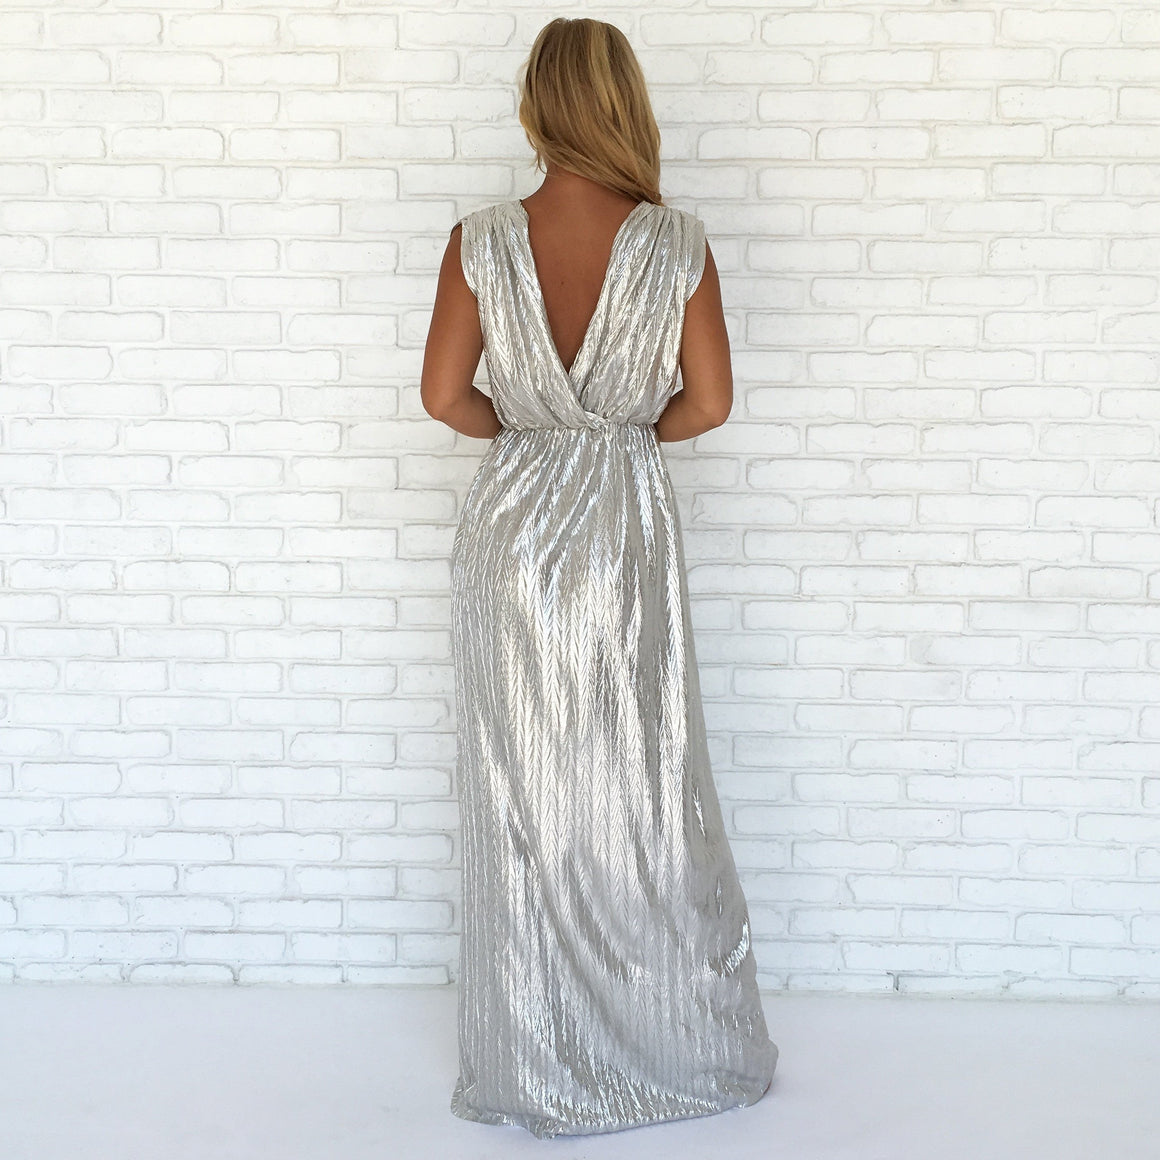 Illuminated Luxe Maxi Dress In Silver - Dainty Hooligan